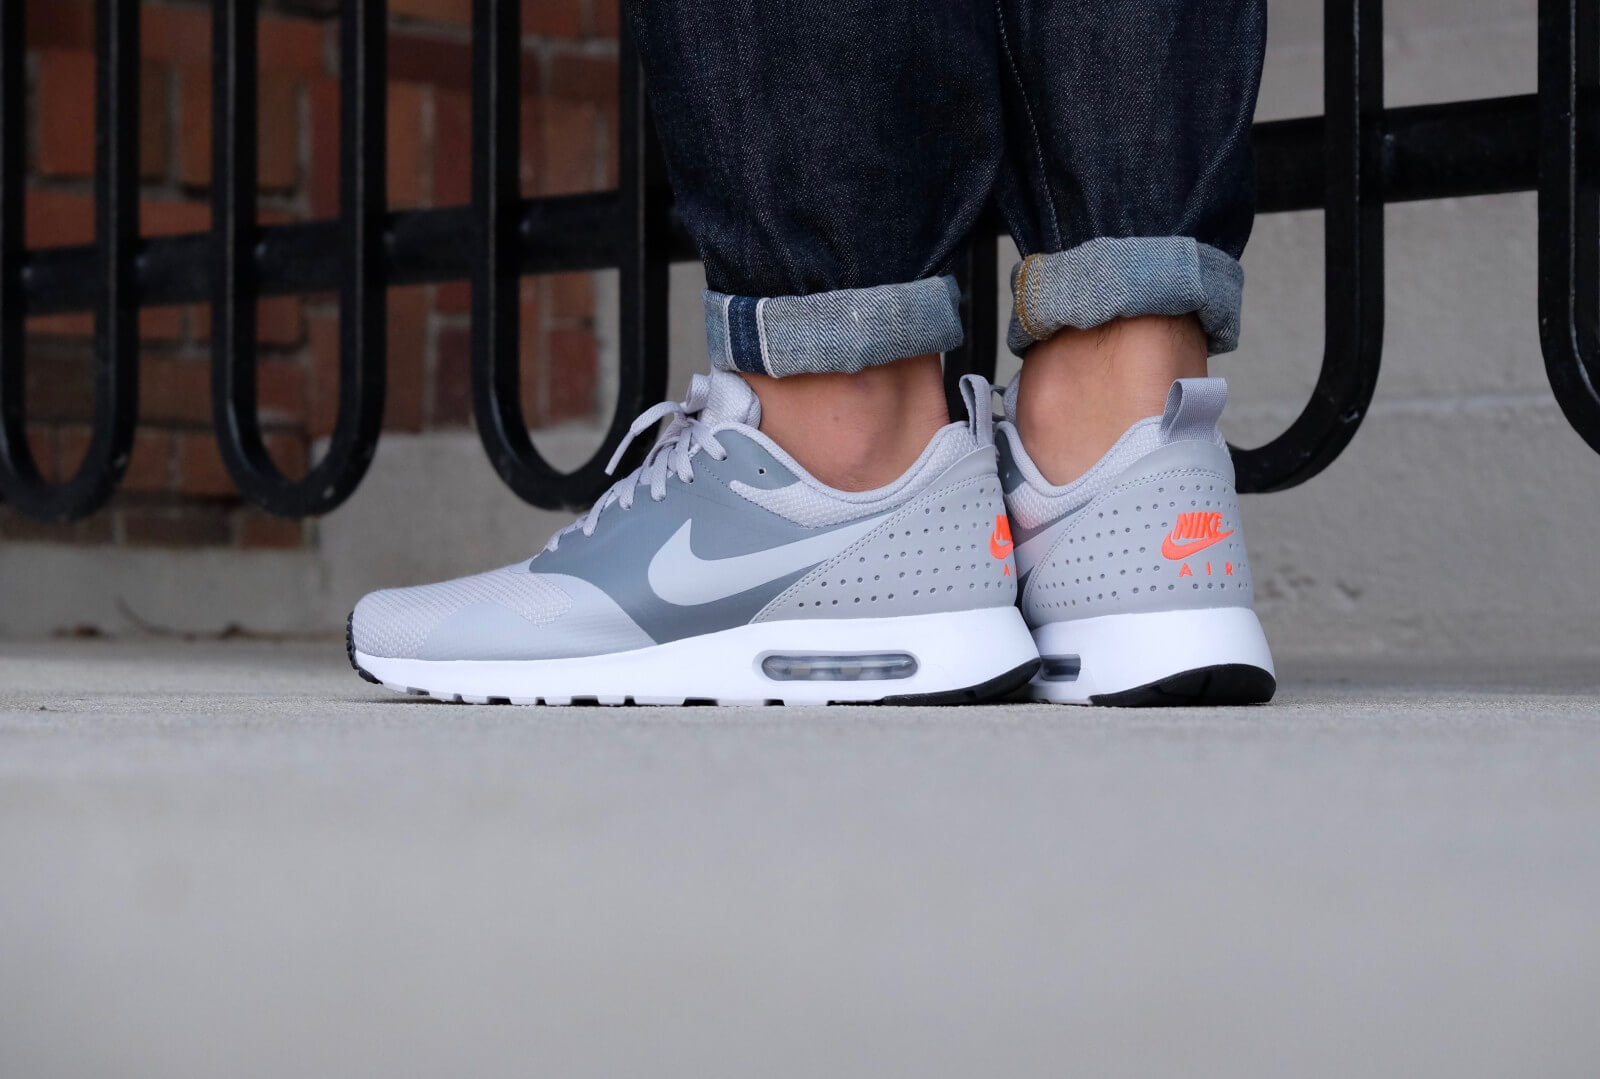 Nike Air Max Tavas shoes grey